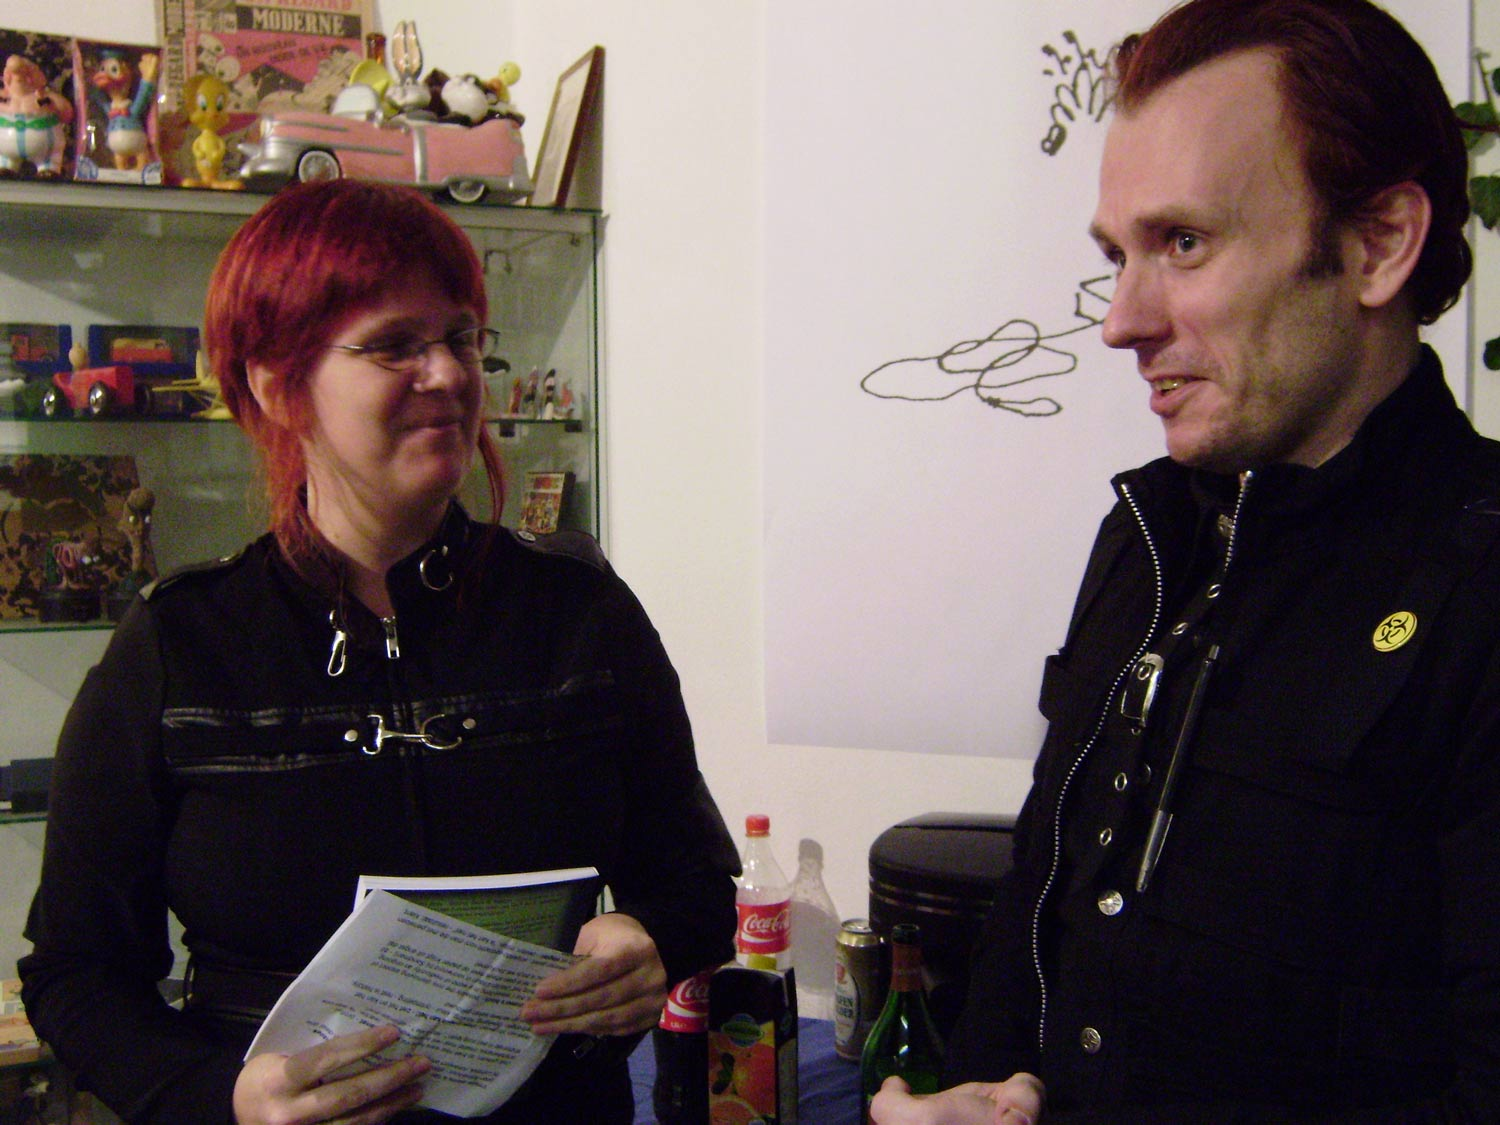 Yiri T. Kohl and Senoeni (Margreet de Heer) presenting the Bijlmerboys Omnibus at Galerie Lambiek in February 2009